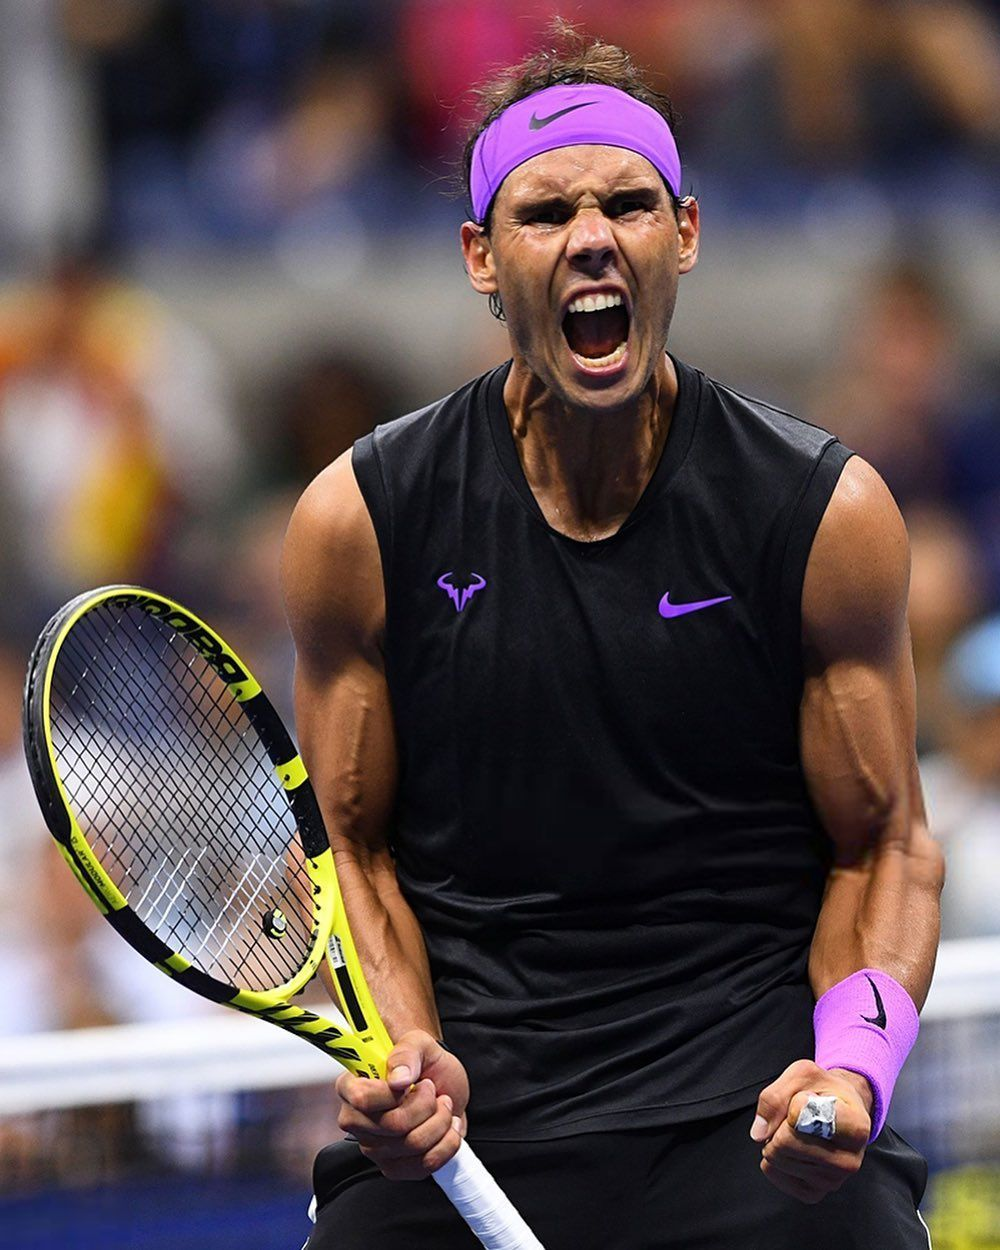 Rafael Nadal Fan Page On Instagram And The Winner Of The Best Outfit Open Is Us Open 2019 Many Thanks For In 2020 Nadal Tennis Rafael Nadal Tennis